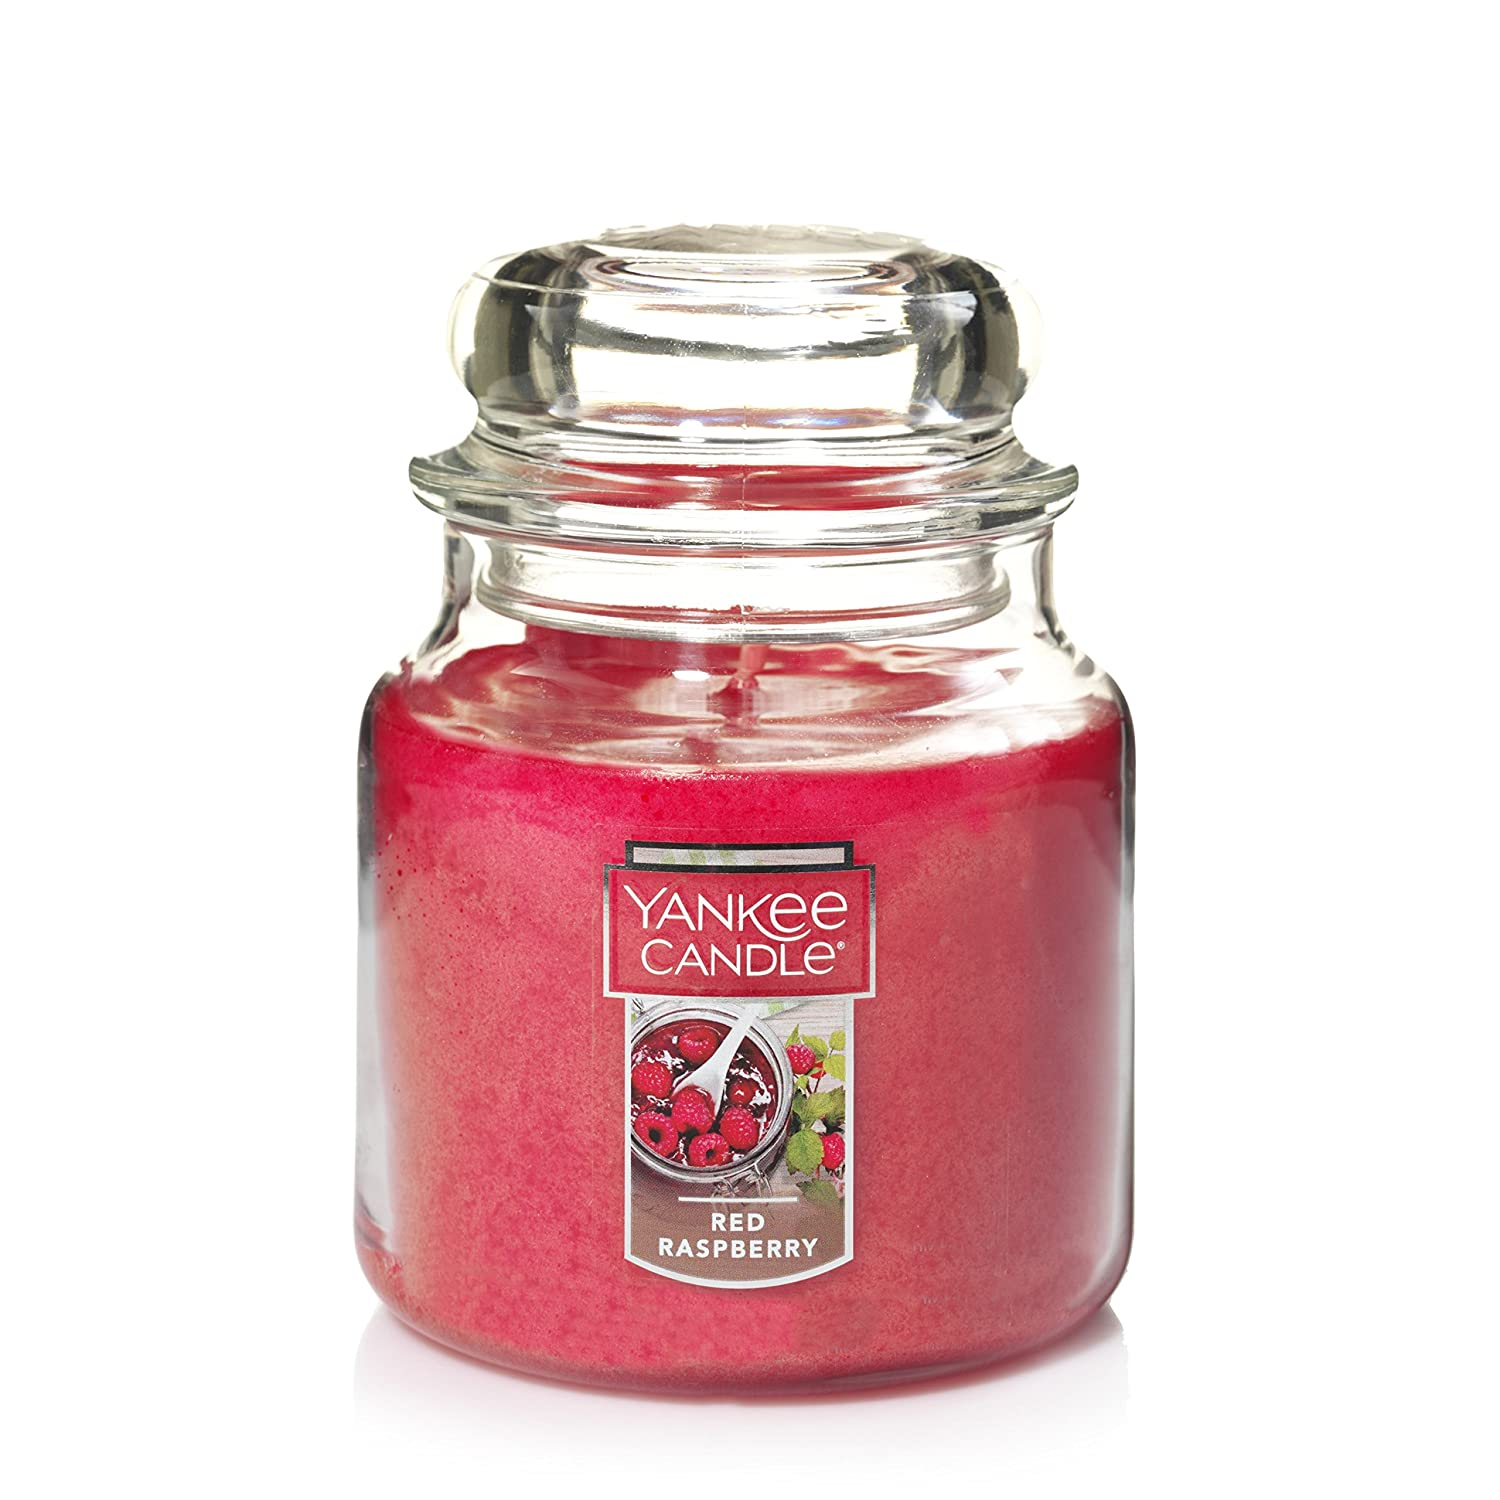 Yankee Candle Large 2-Wick Tumbler Candle, Red Raspberry Yankee Candle Company 1323195